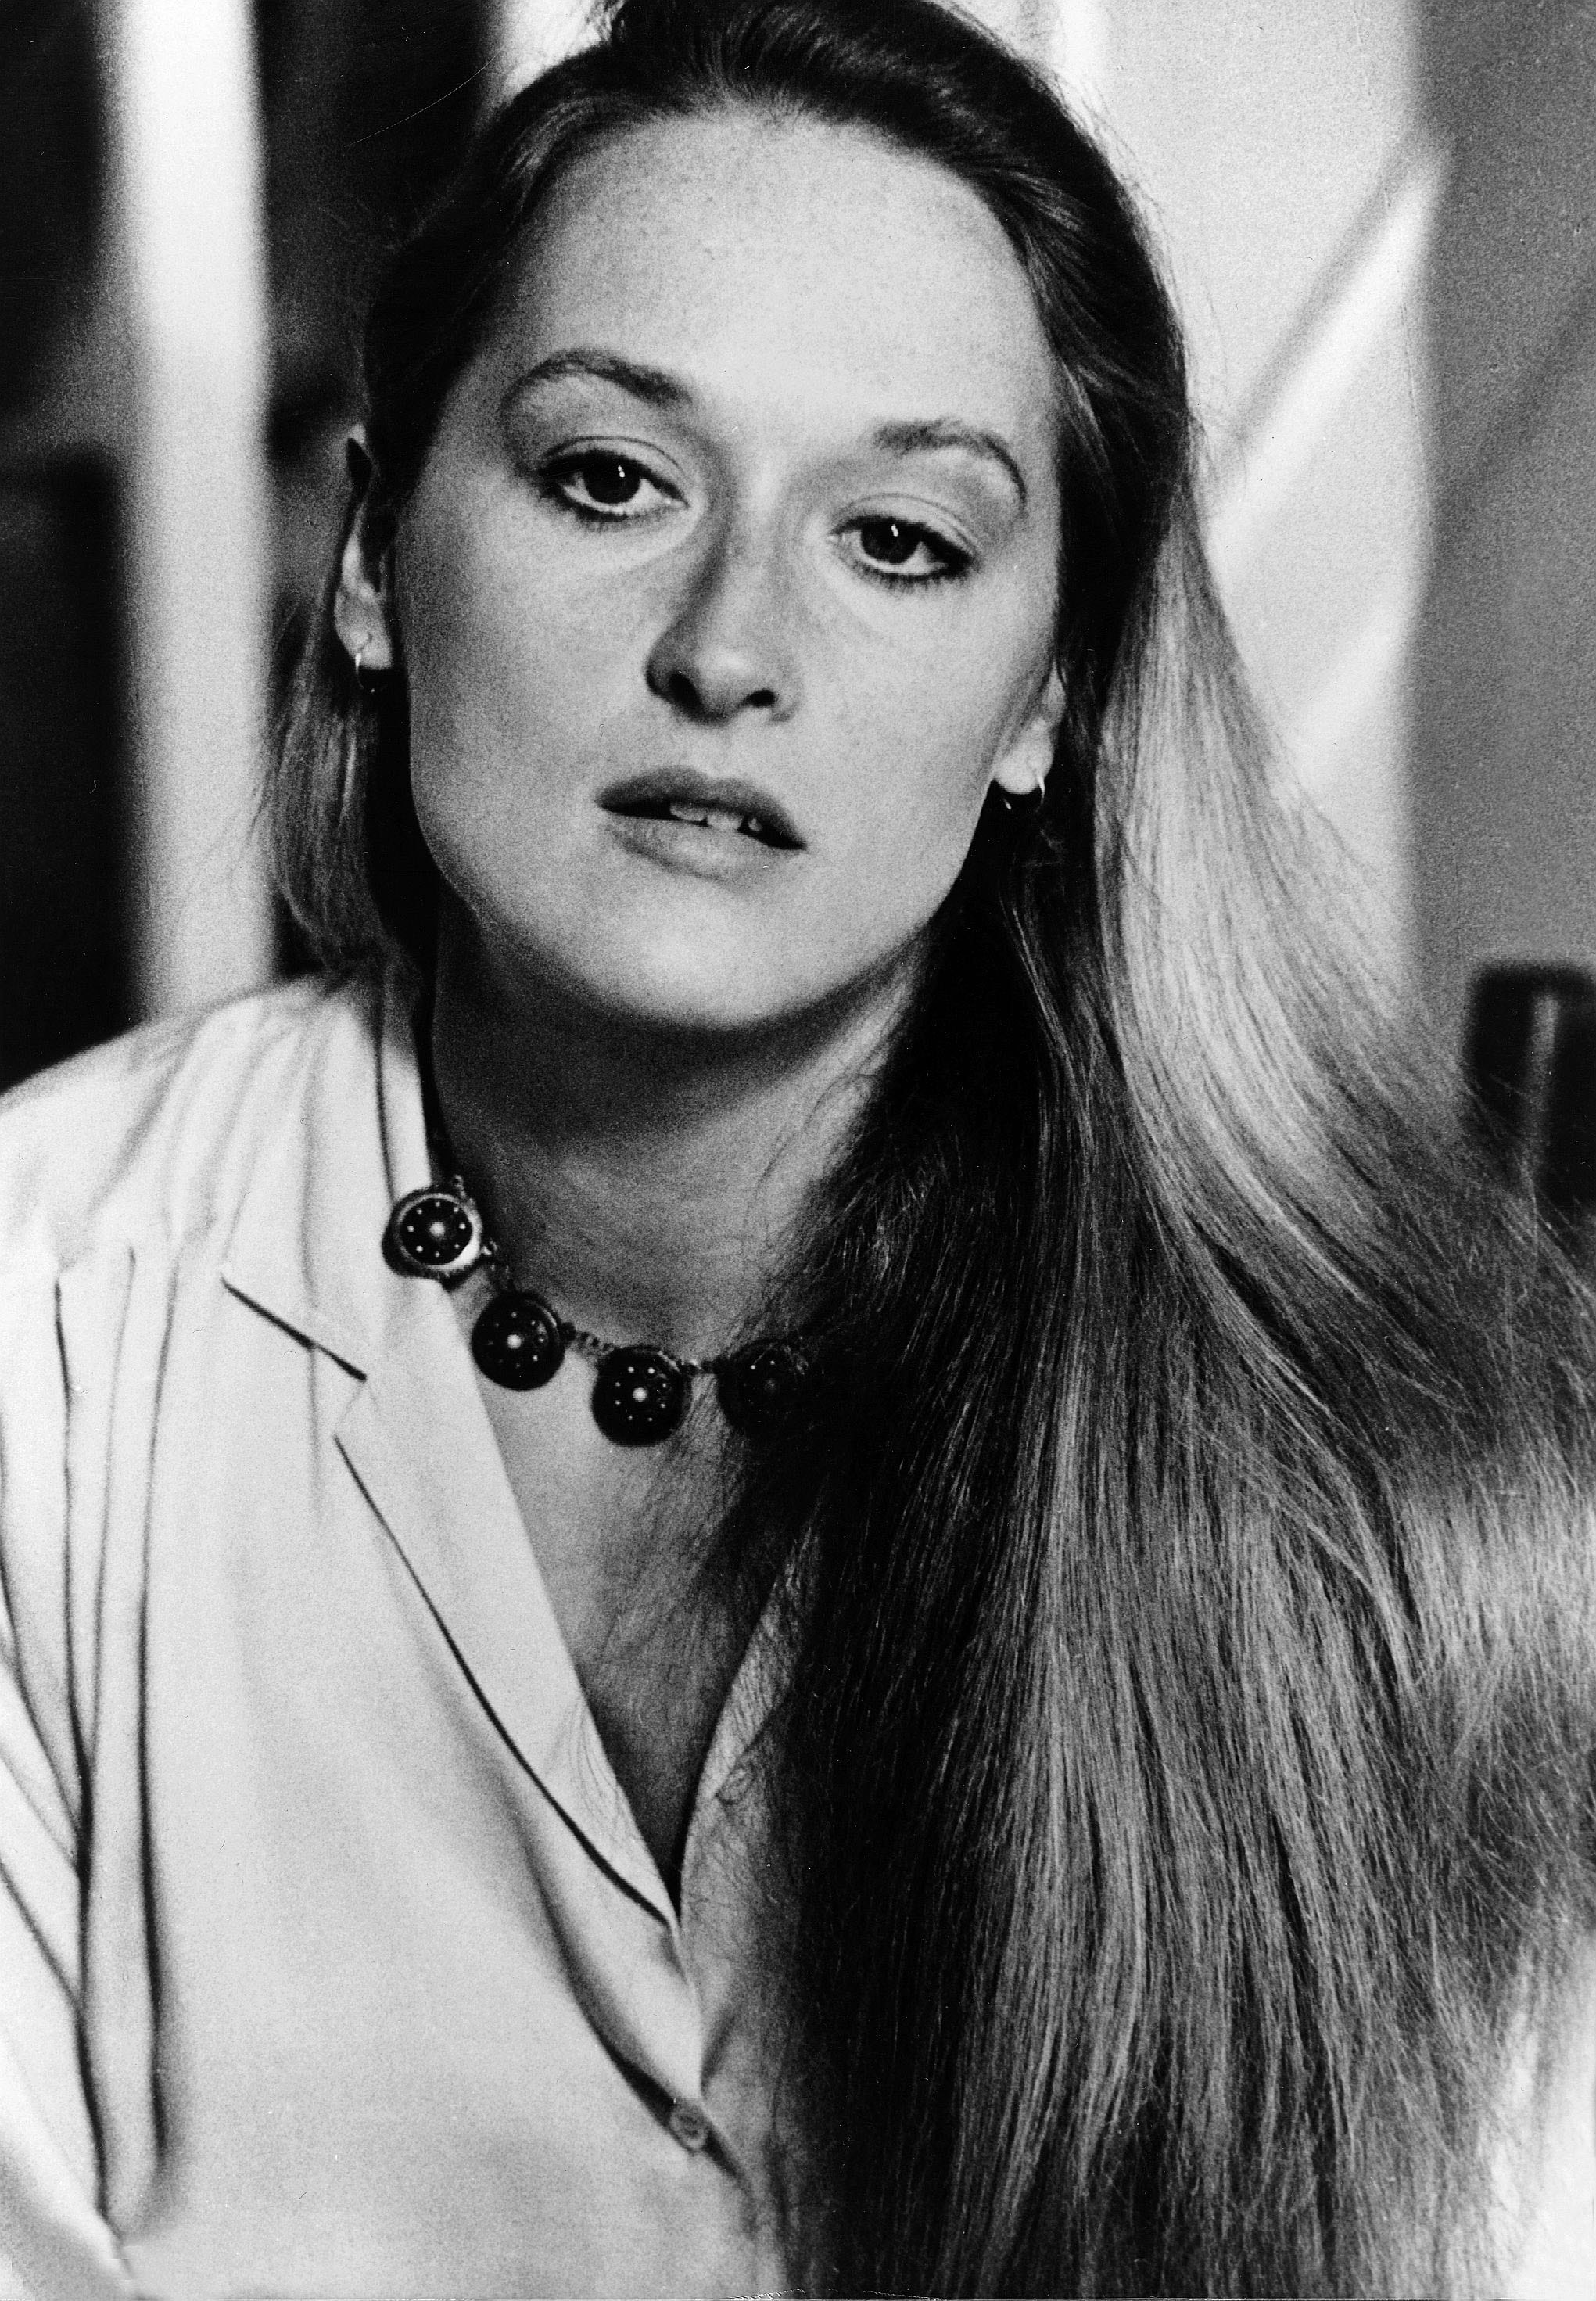 70s hairstyles: Meryl Streep long blonde straight hair swept over her shoulder in black and white image